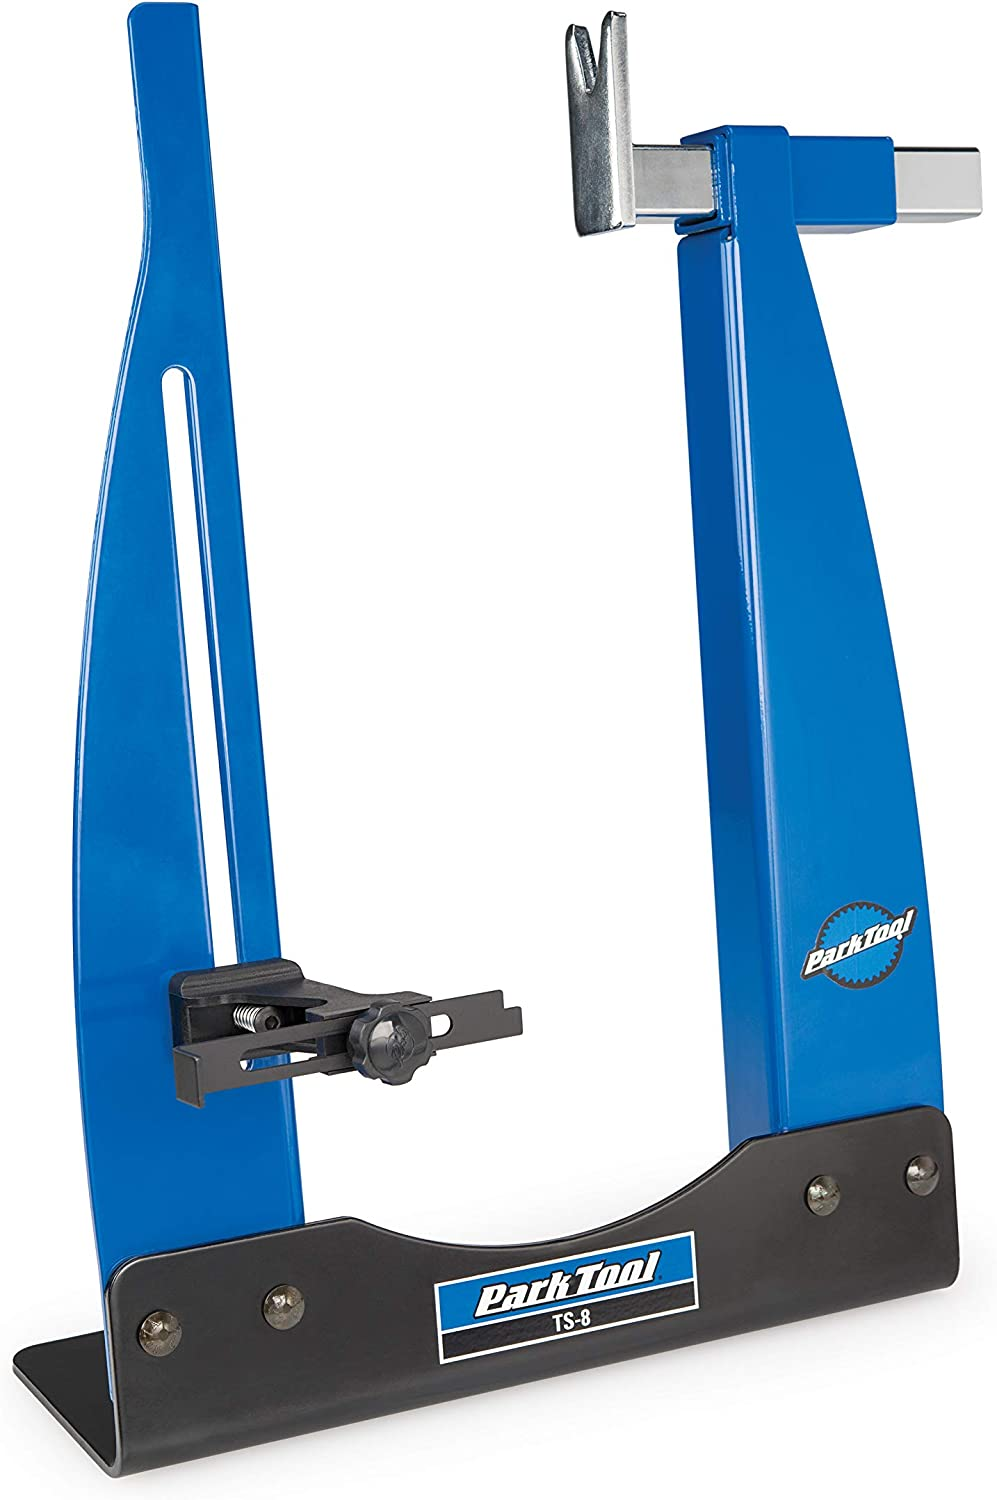 Park Tool TS-8 Home Mechanic Bicycle Wheel Truing Stand